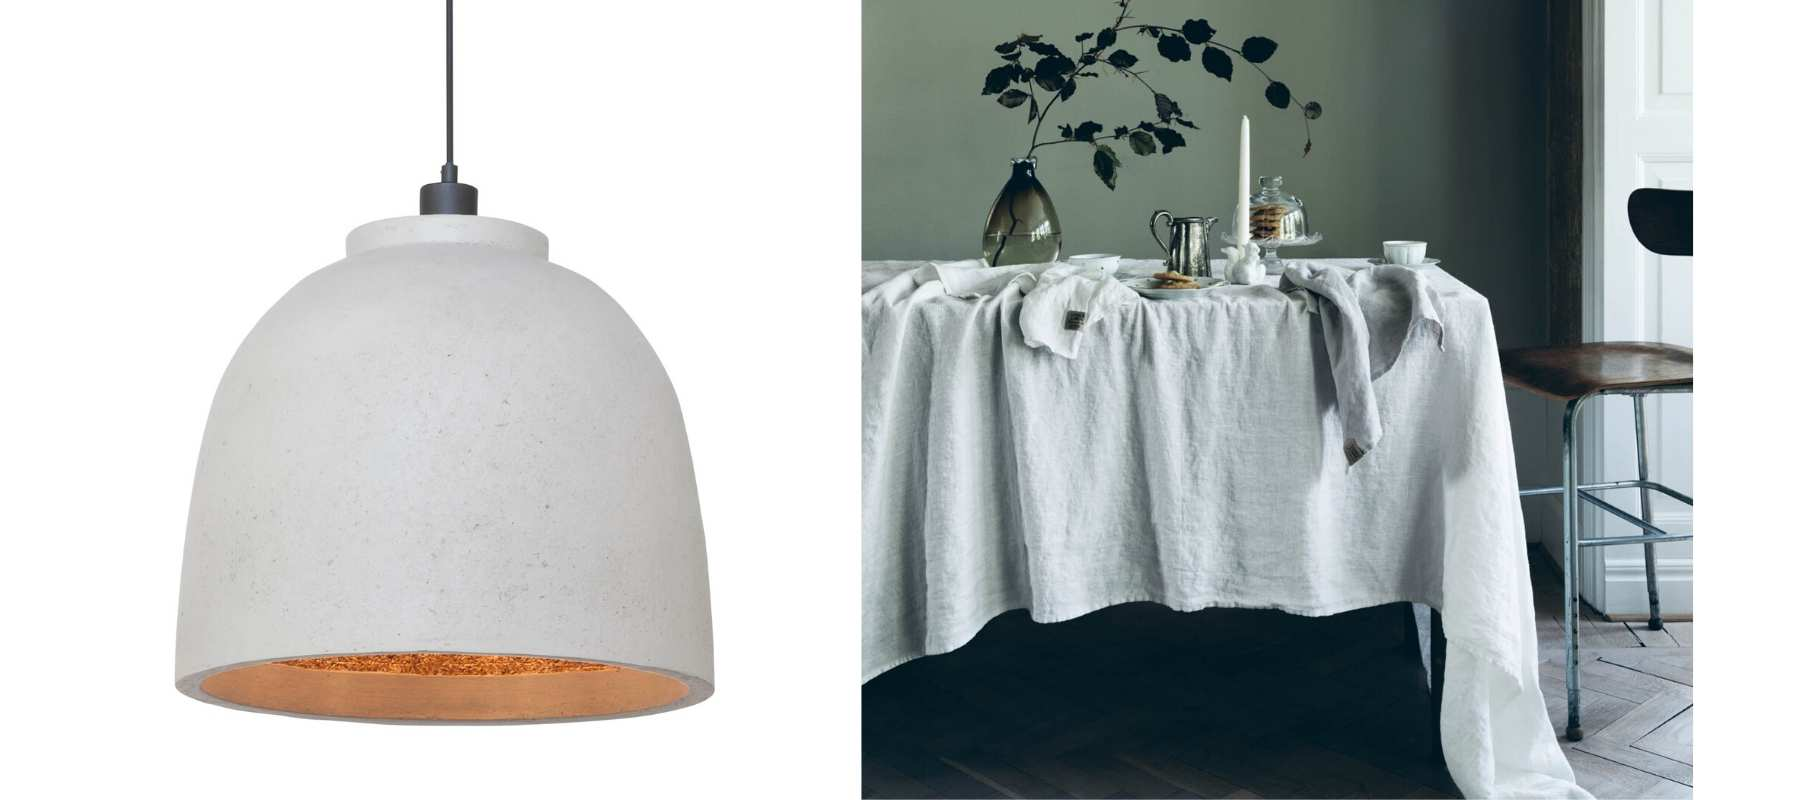 Image of white woodchip pendant ceiling light and white linen tablecloth